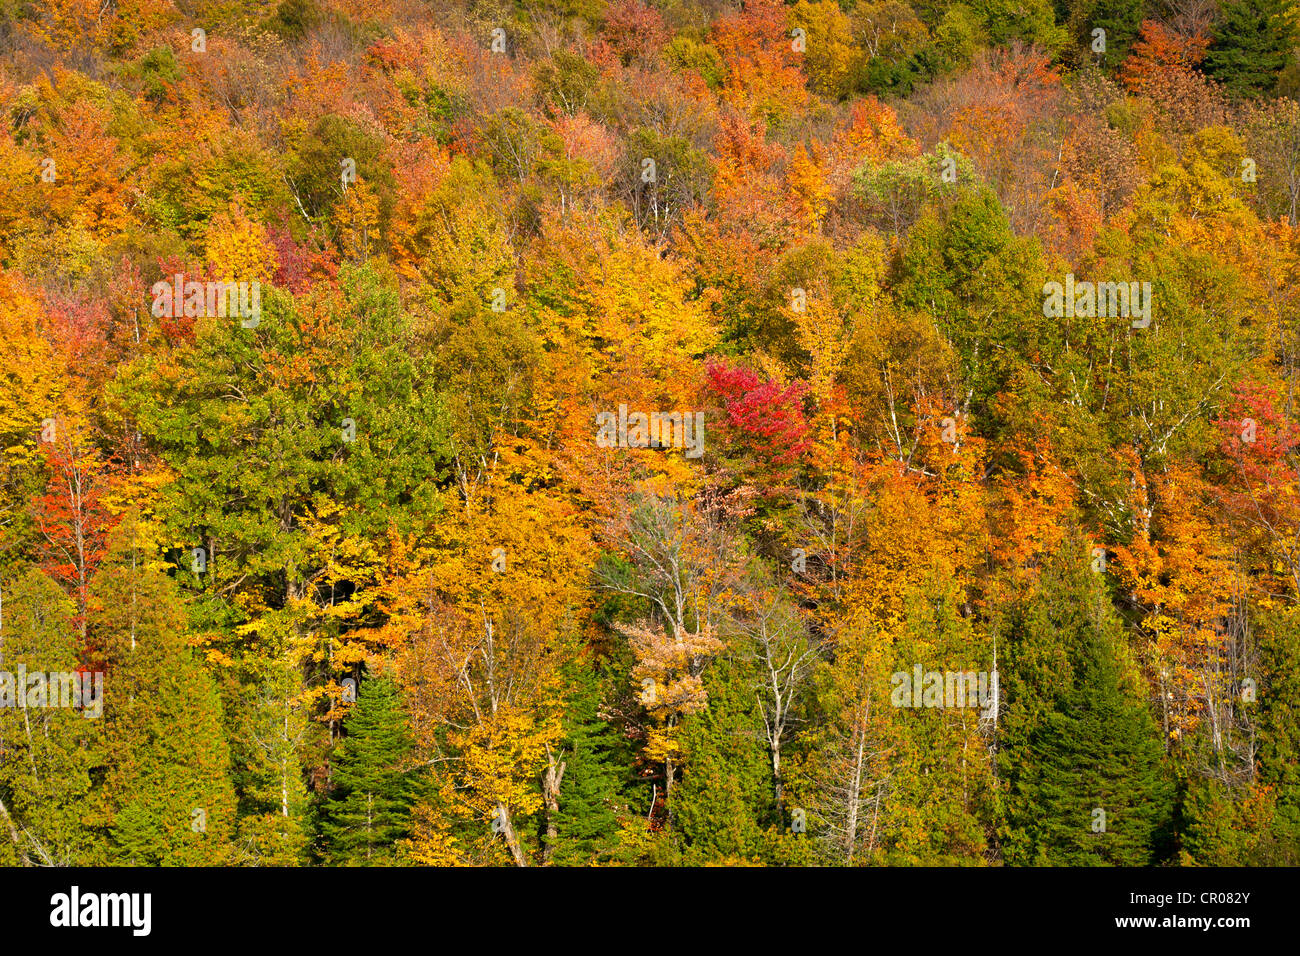 Sugarloaf Pond in autumn, Quebec, Canada - Stock Image